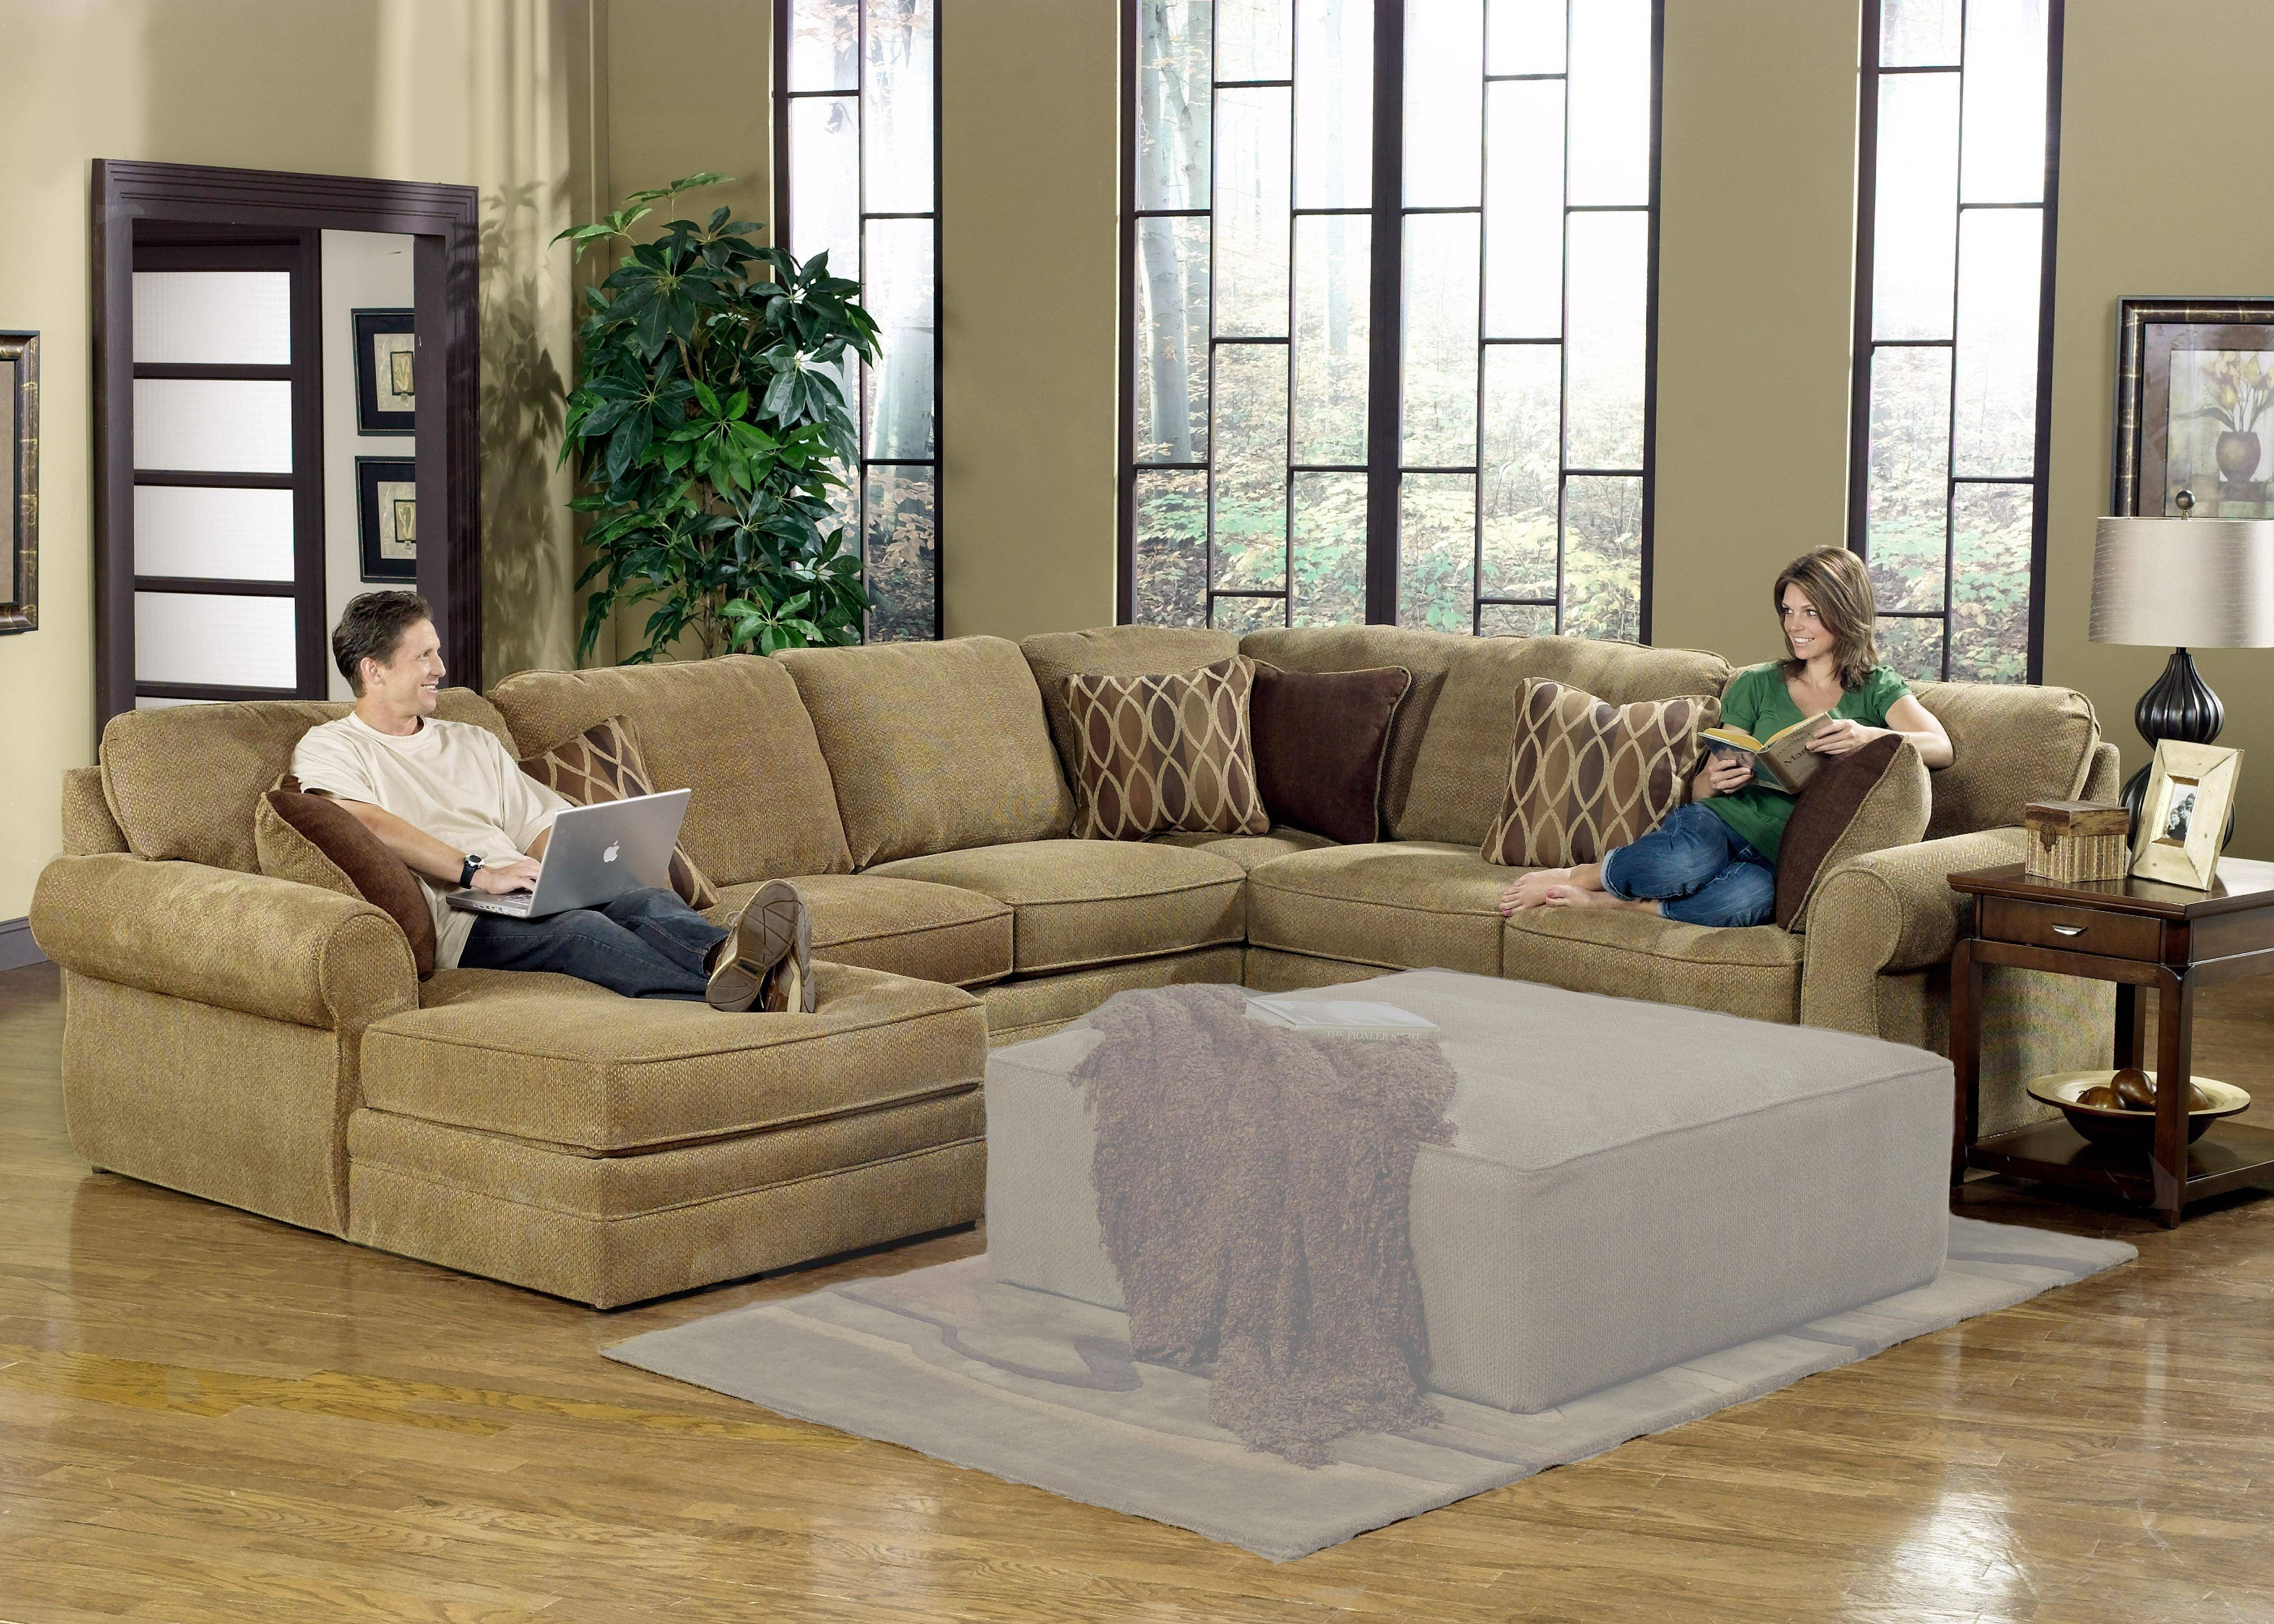 Furniture: Interesting Living Room Interior Using Large Sectional intended for Large Sofa Sectionals (Image 11 of 25)